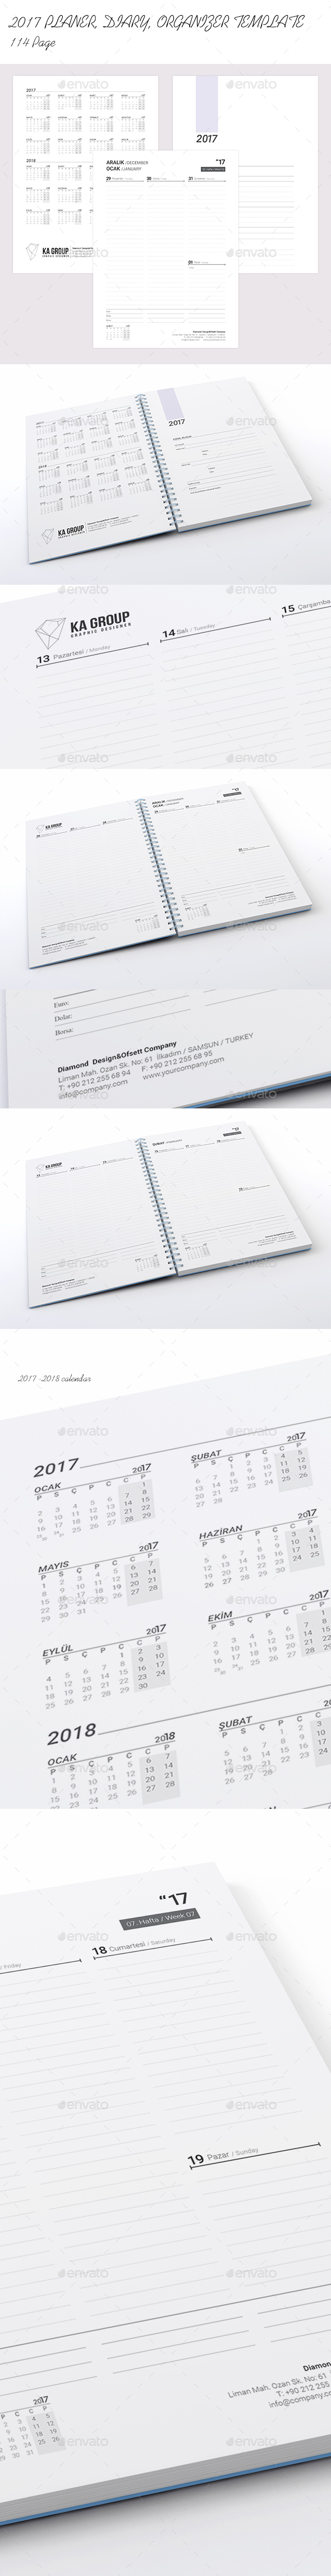 Weekly Planner 2017 over 114 pages - Calendars Stationery